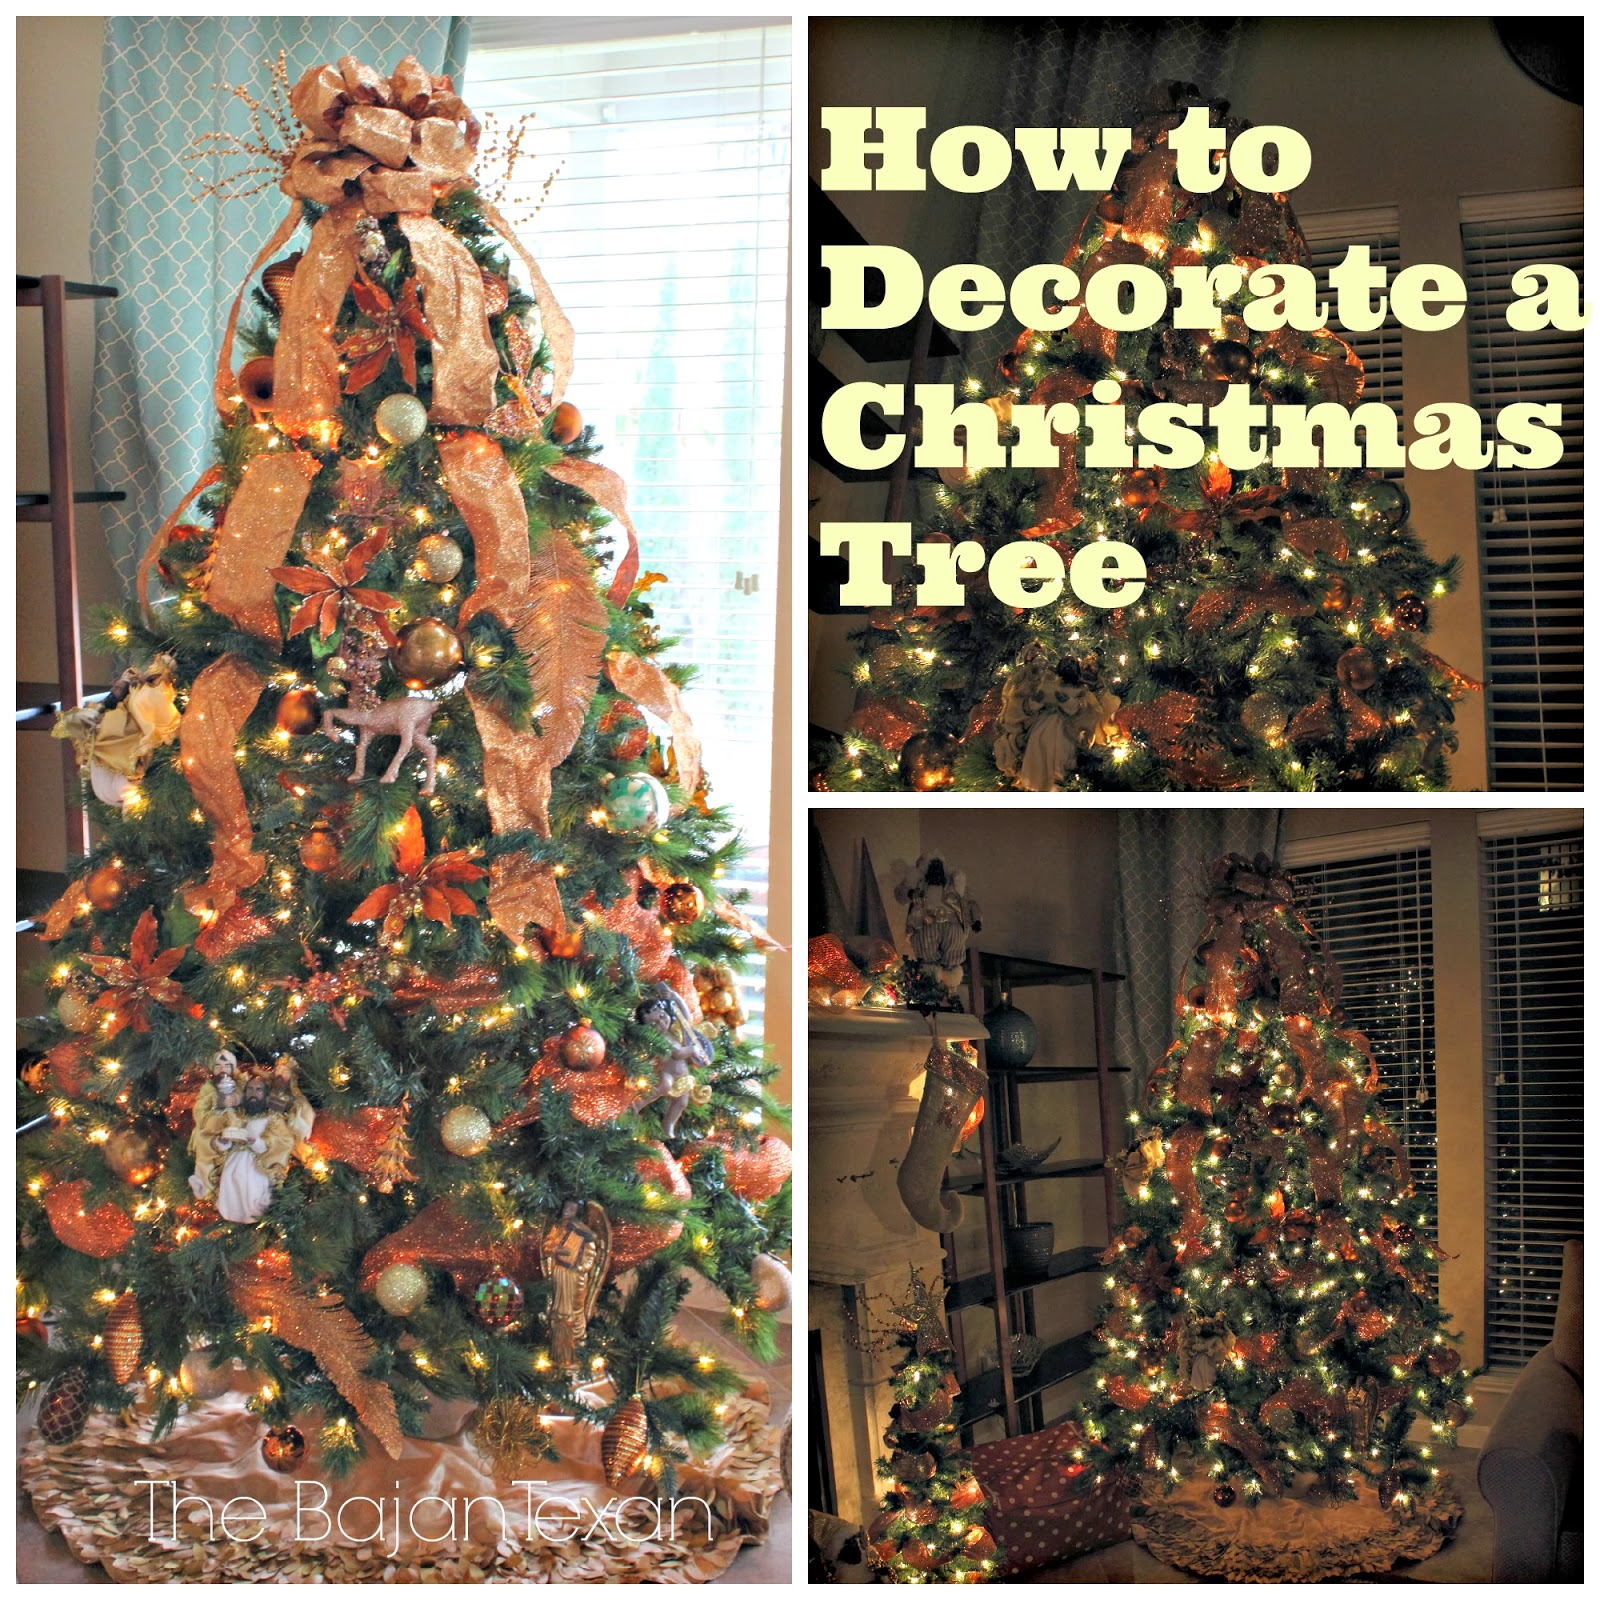 How to decorate a christmas tree holiday series 5 the How do you decorate a christmas tree